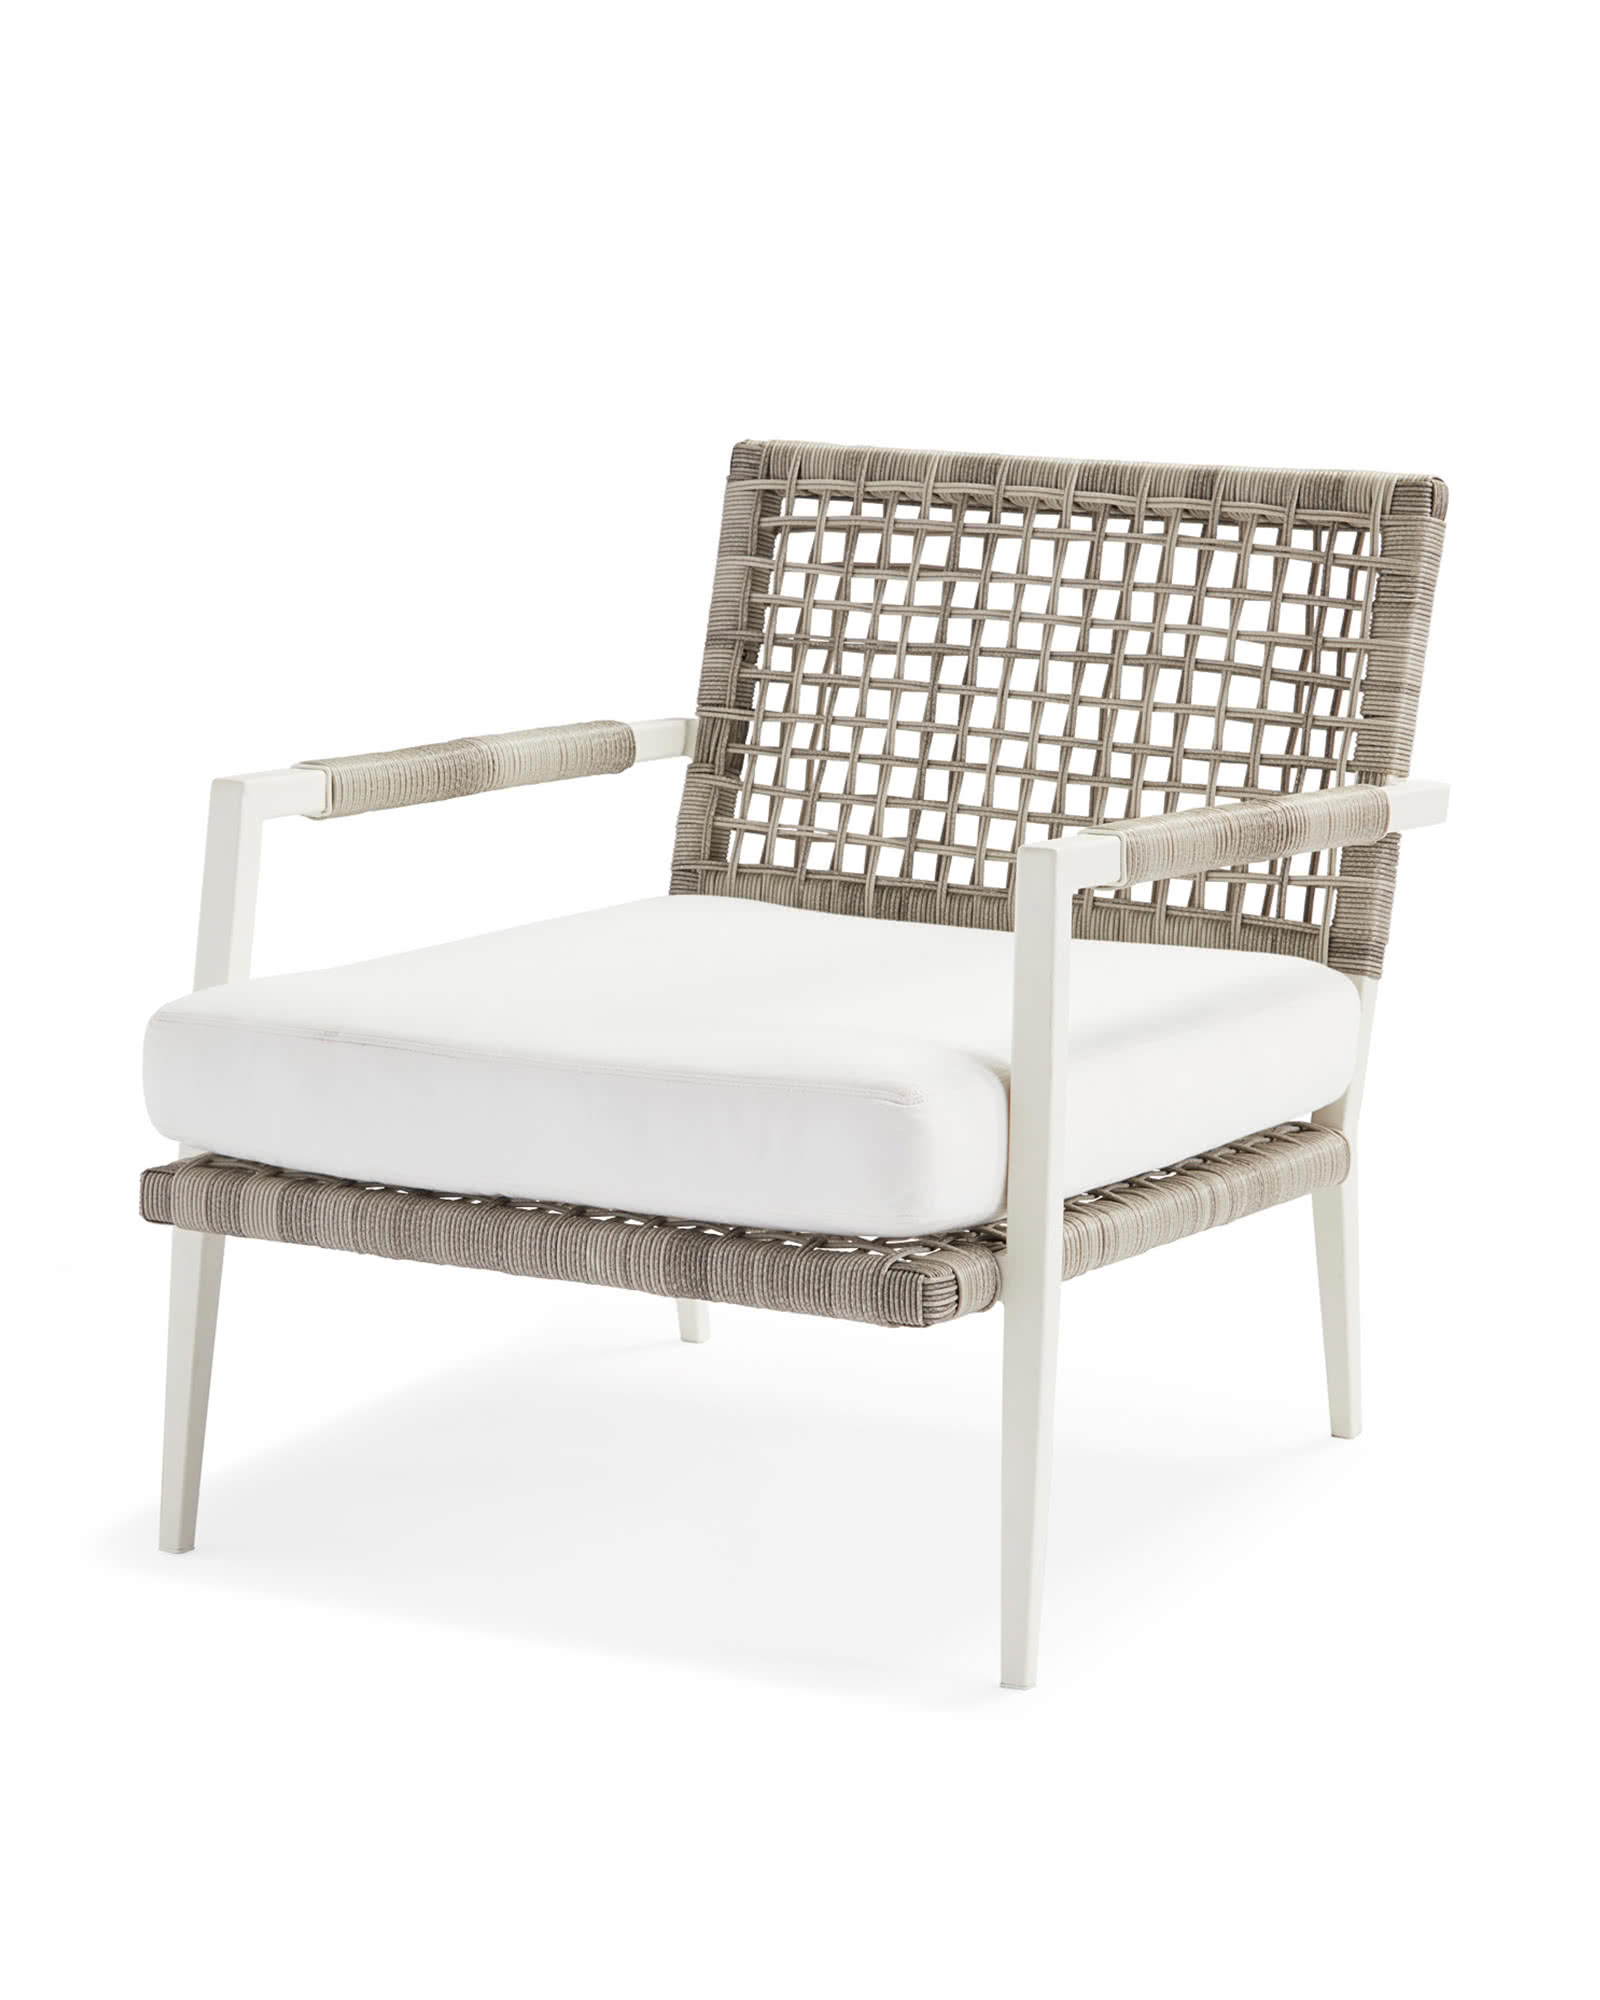 Waterfront Lounge Chair Pertaining To Well Known Lounge Chairs In White With Grey Cushions (View 22 of 25)